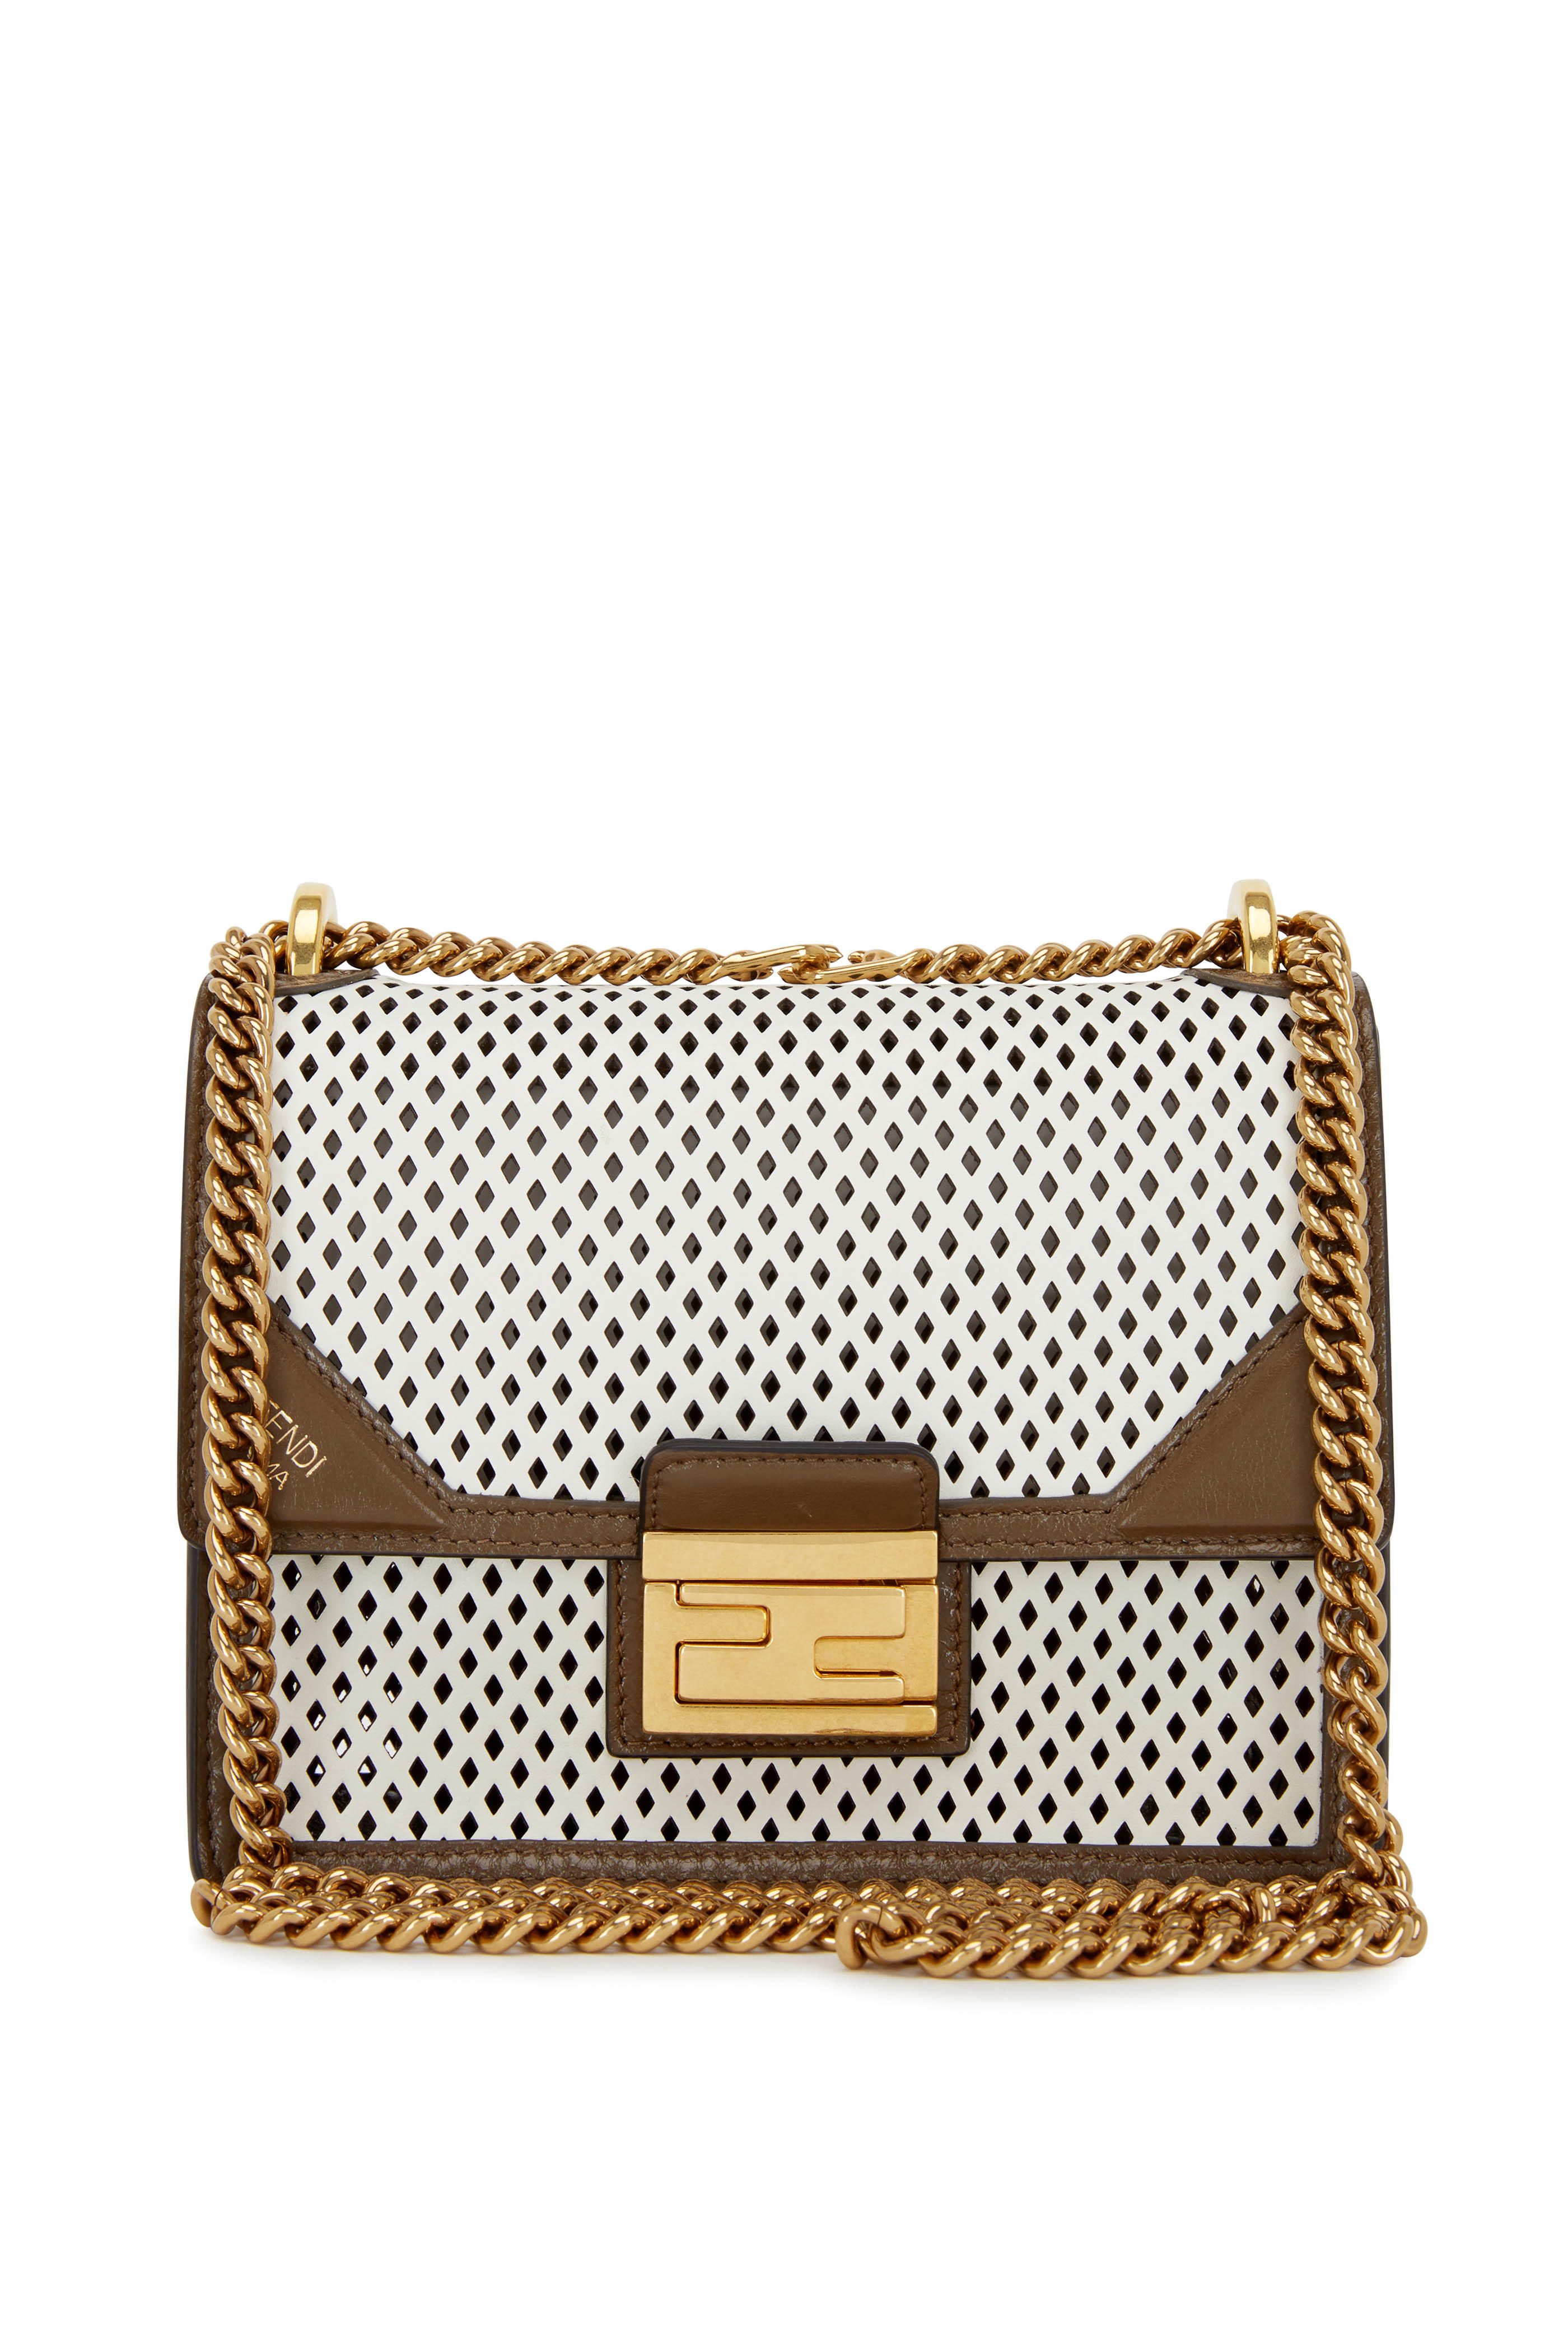 d9e0a1c2 Fendi - Kan U White & Brown Perforated Leather Small Bag | Mitchell ...